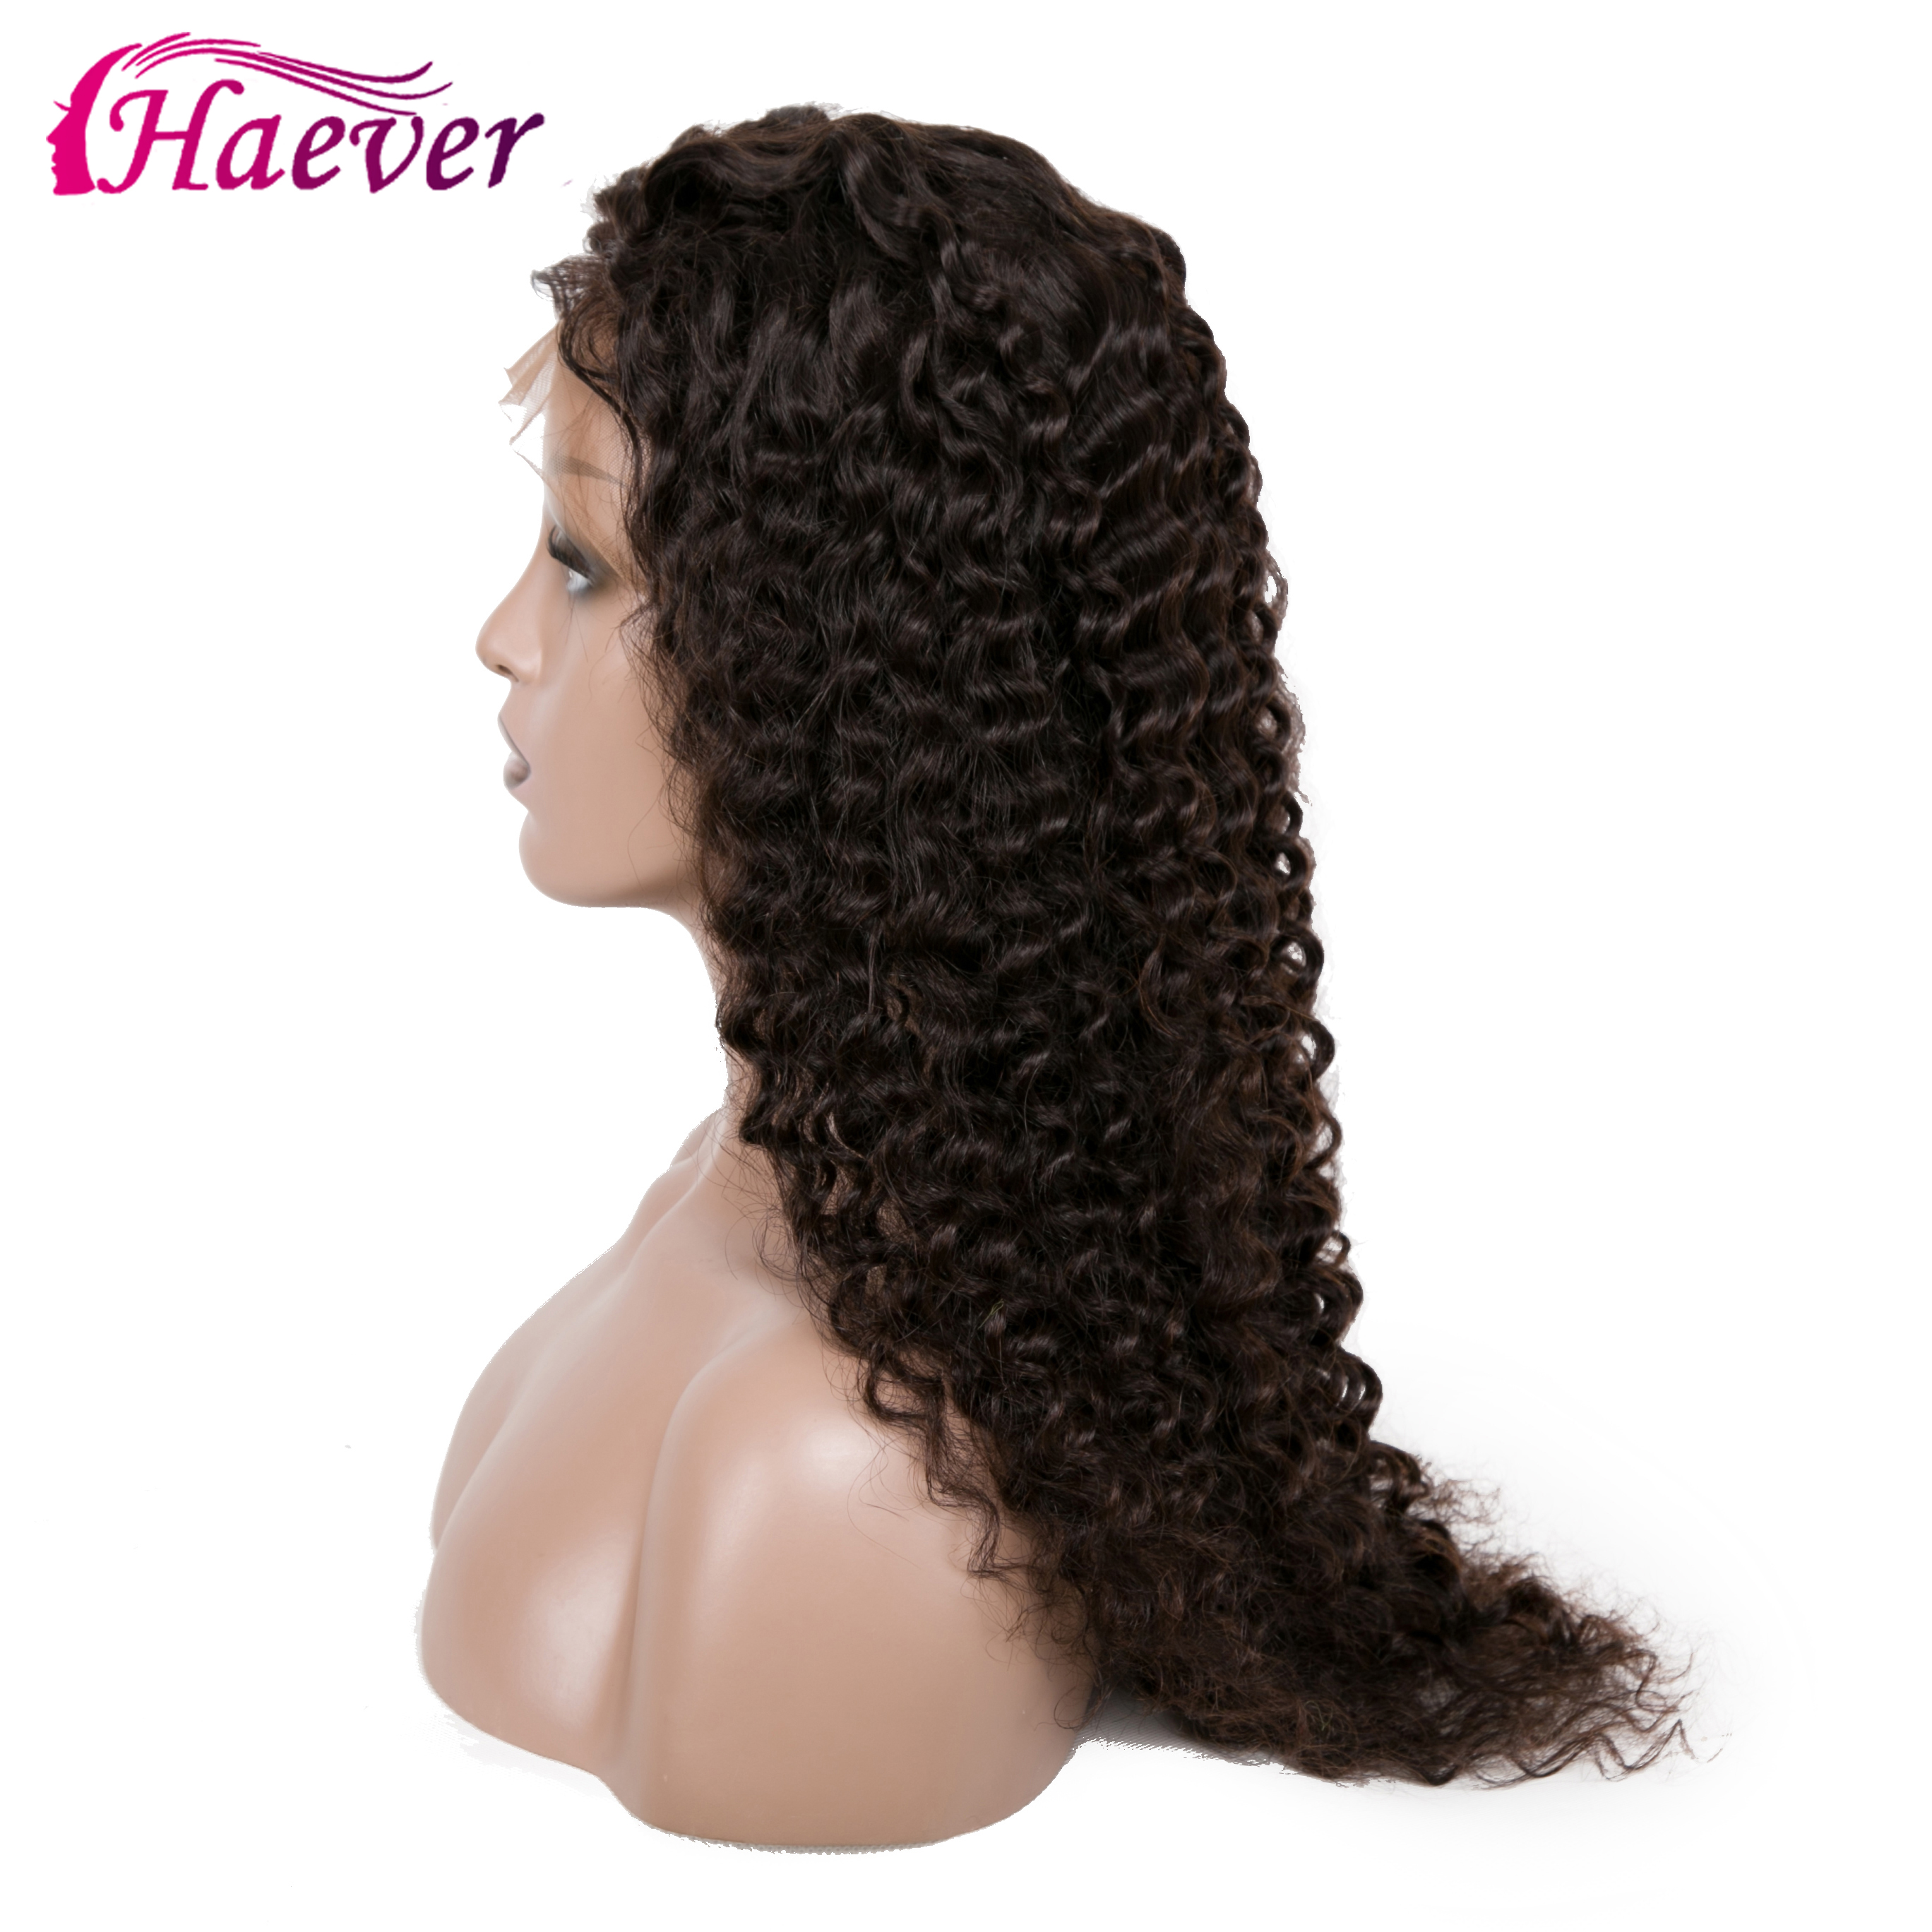 Haever Malaysian Deep Curly Human Hair Wig For Black Women 180 Density 13x4 Natural Hairline Remy Human Hair New Hair Lace Front